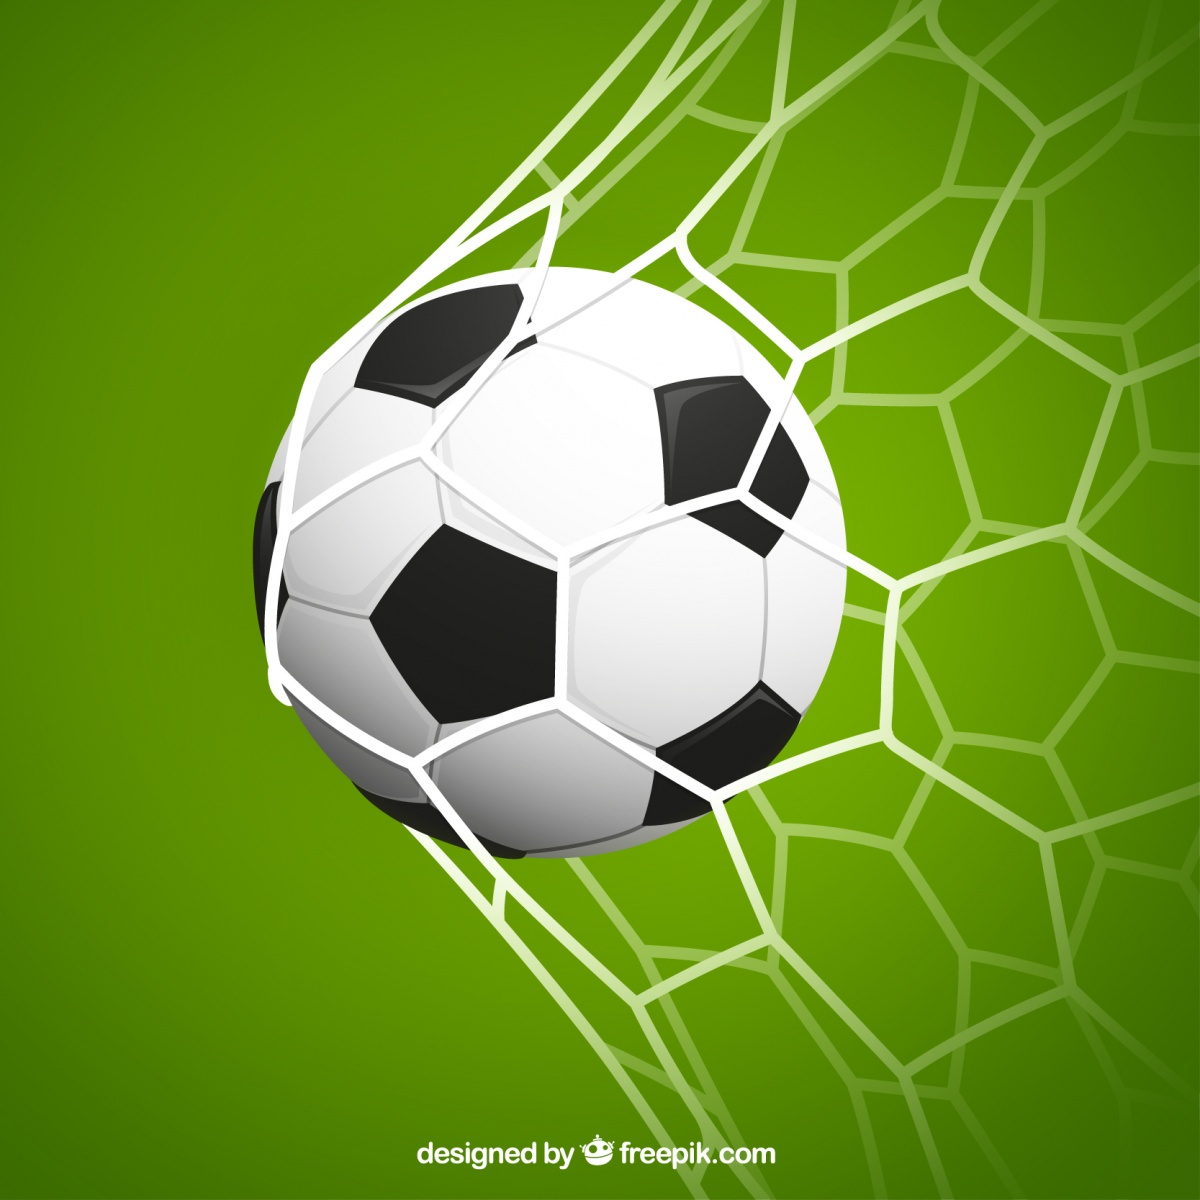 "<a href=""http://www.freepik.com/free-vector/football-goal_791432.htm"">Designed by Freepik</a>"